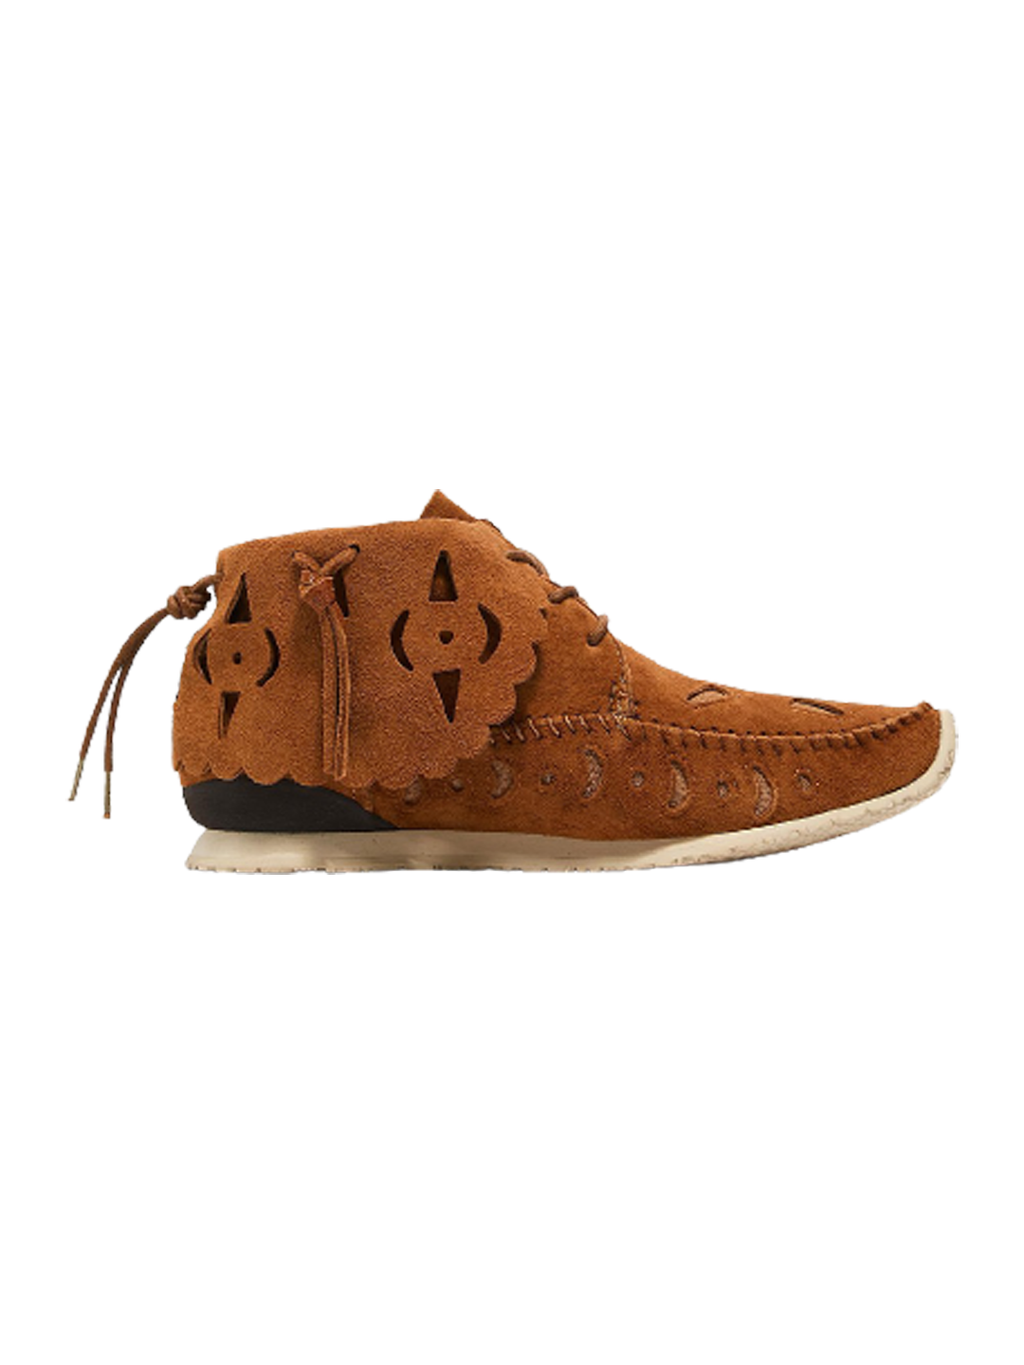 Brown Fbt Bearfoot Perf-Folk Shoes